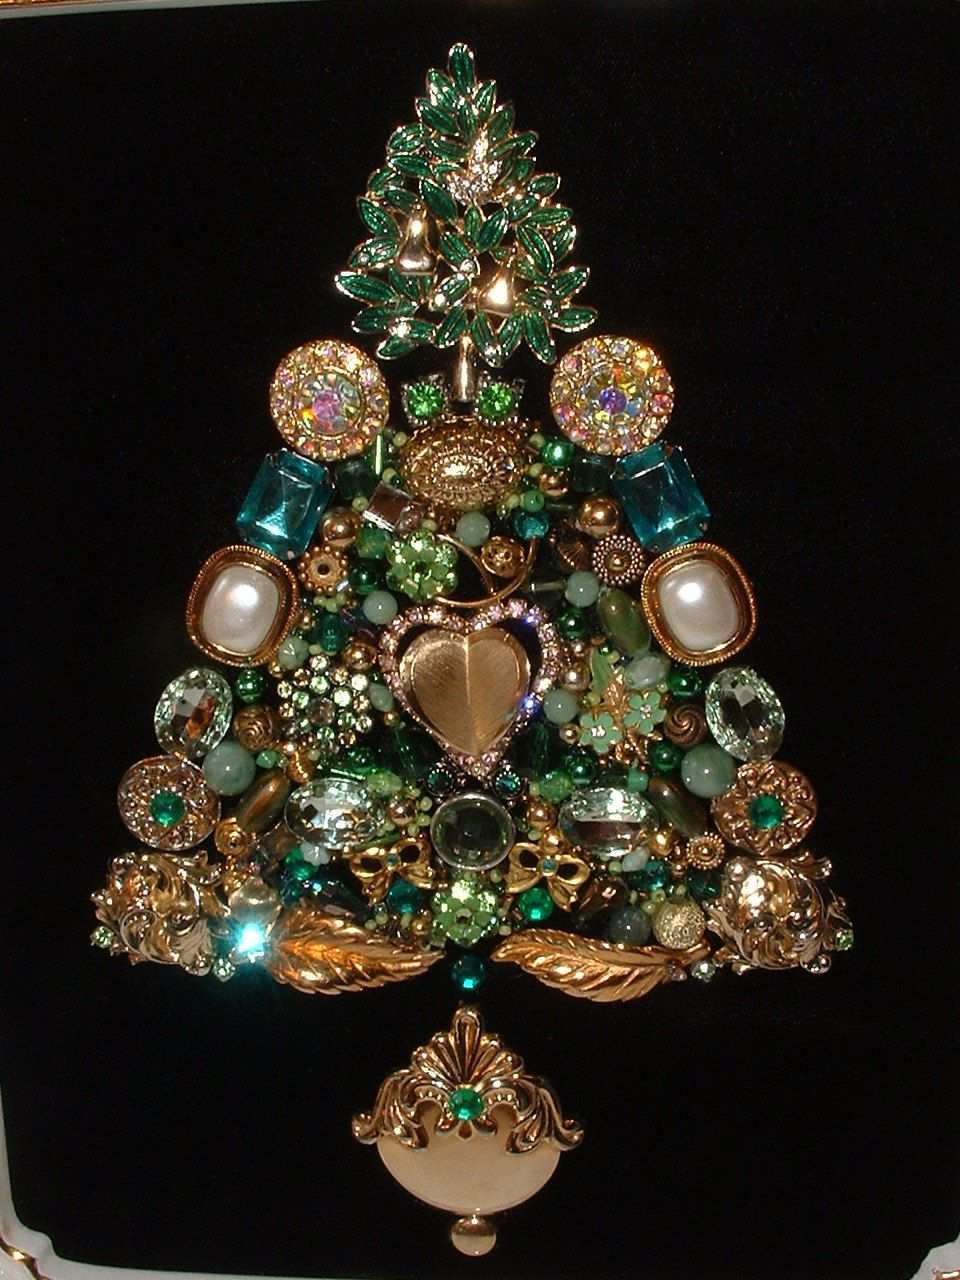 Vintage Jewelry Green Gold Partridge In A Pear Tree Framed Etsy In 2020 Jeweled Christmas Trees Vintage Jewelry Crafts Jeweled Christmas